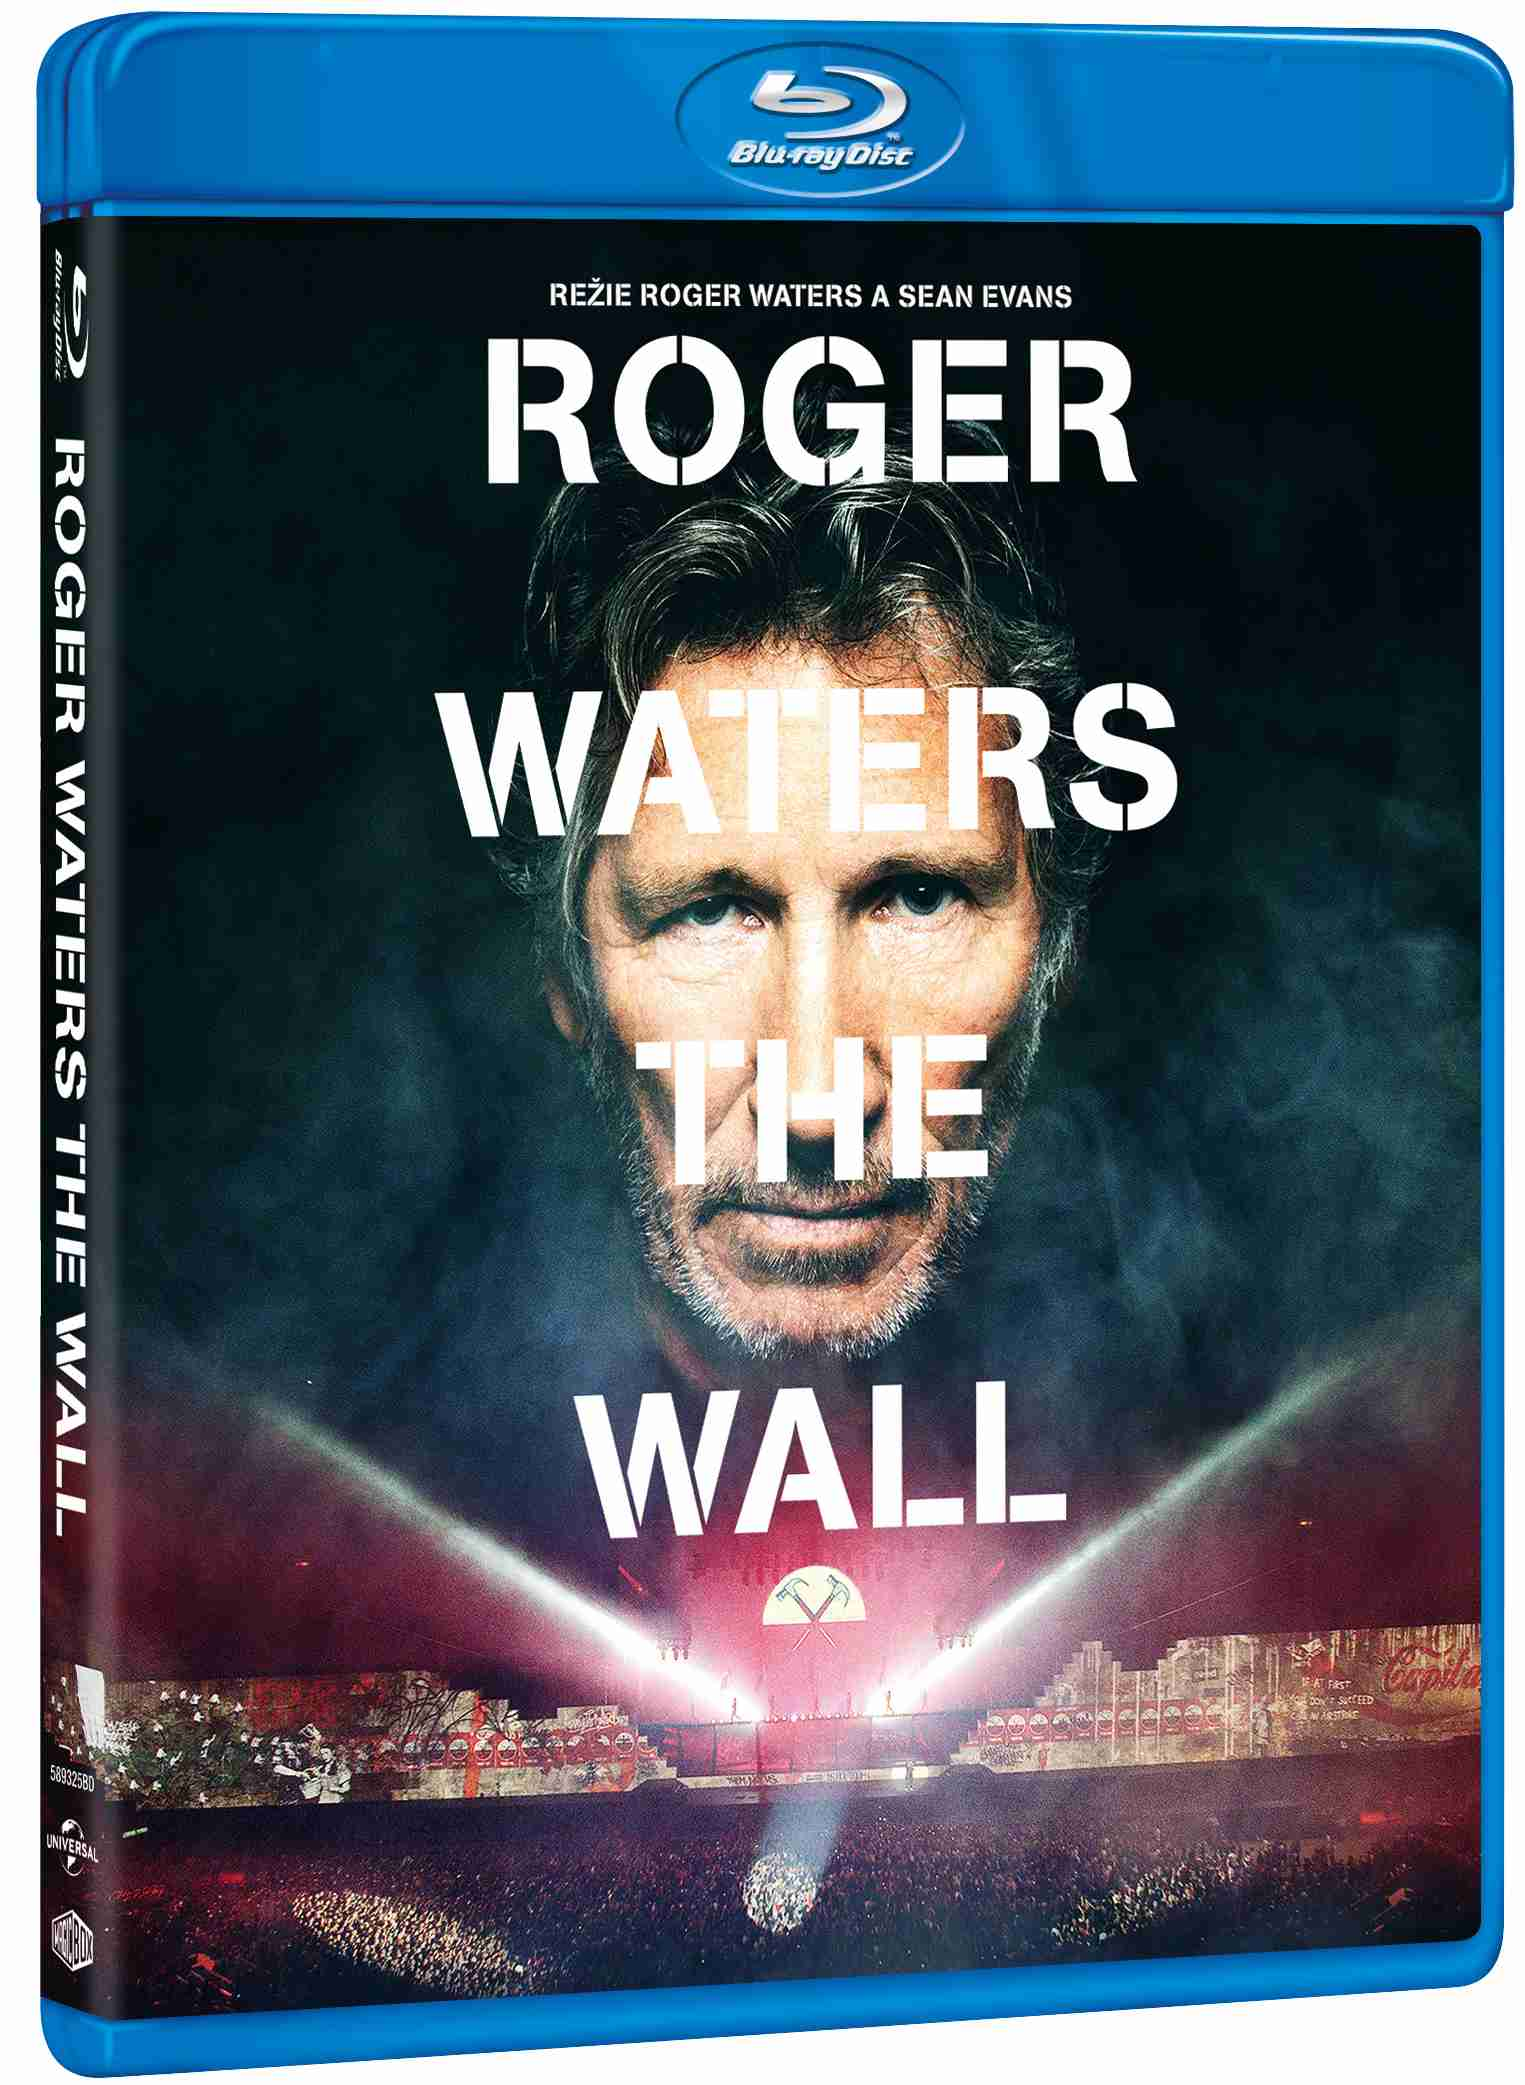 WATERS ROGER - THE WALL - Blu-ray